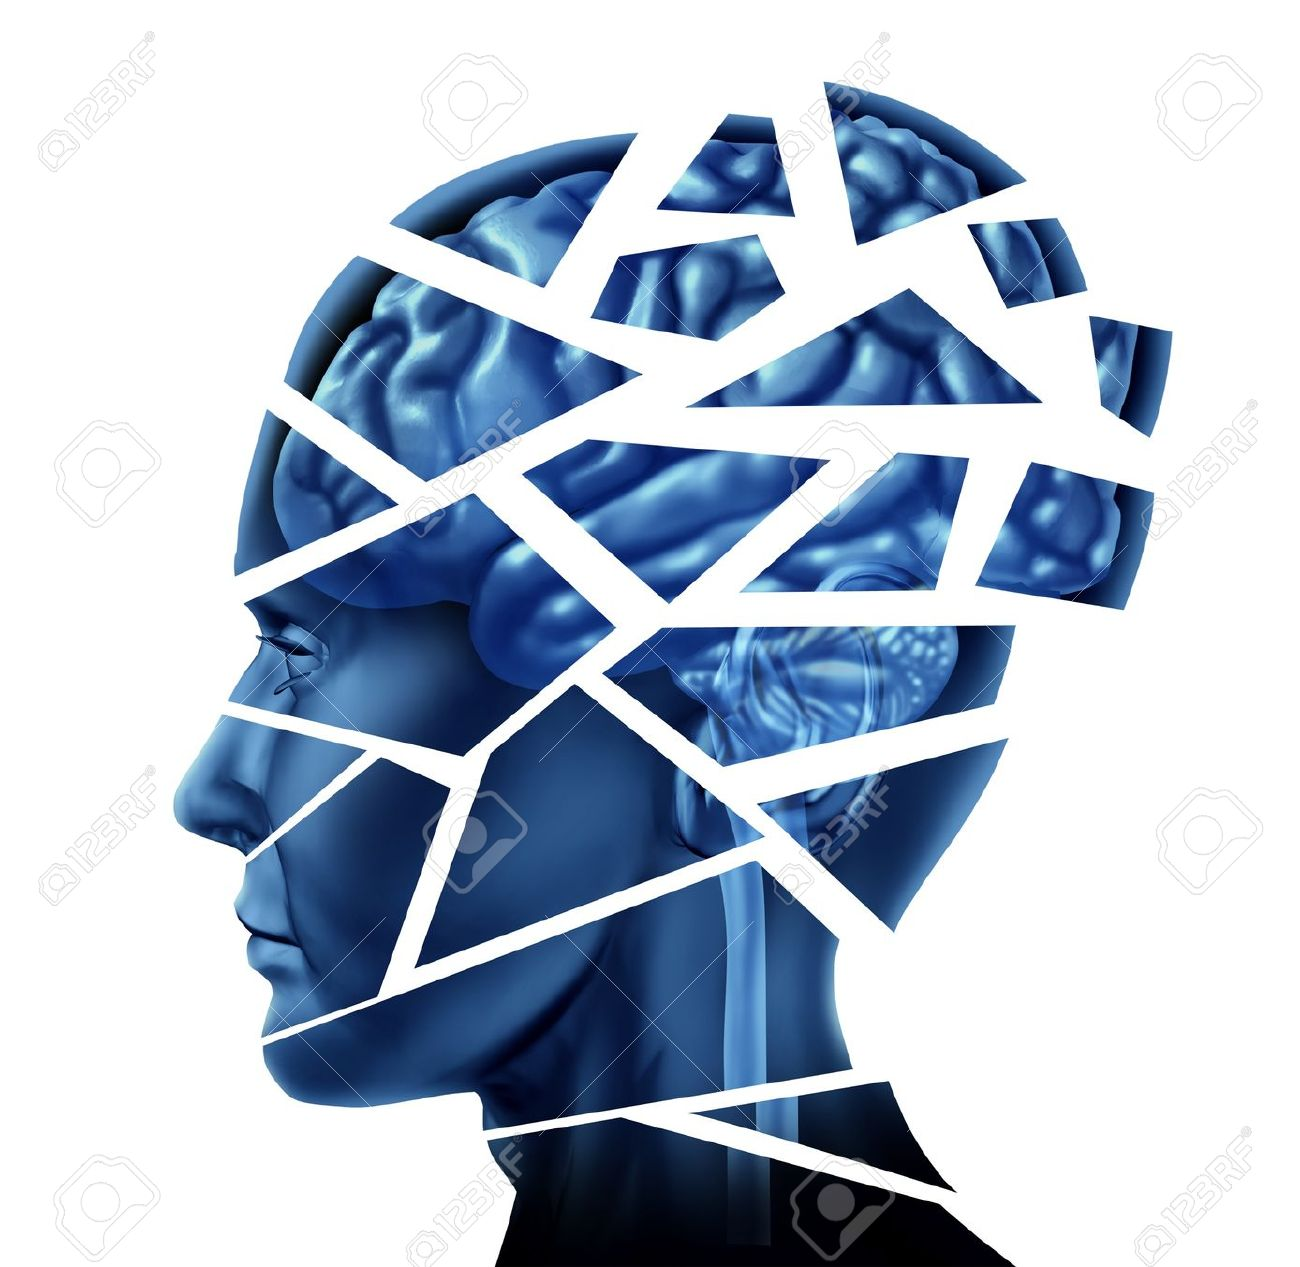 Brain injury and neurological disorder represented by a human head and mind broken in pieces to symbolize a severe medical mental trauma and cognitive illness on white background. Stock Photo - 10843743